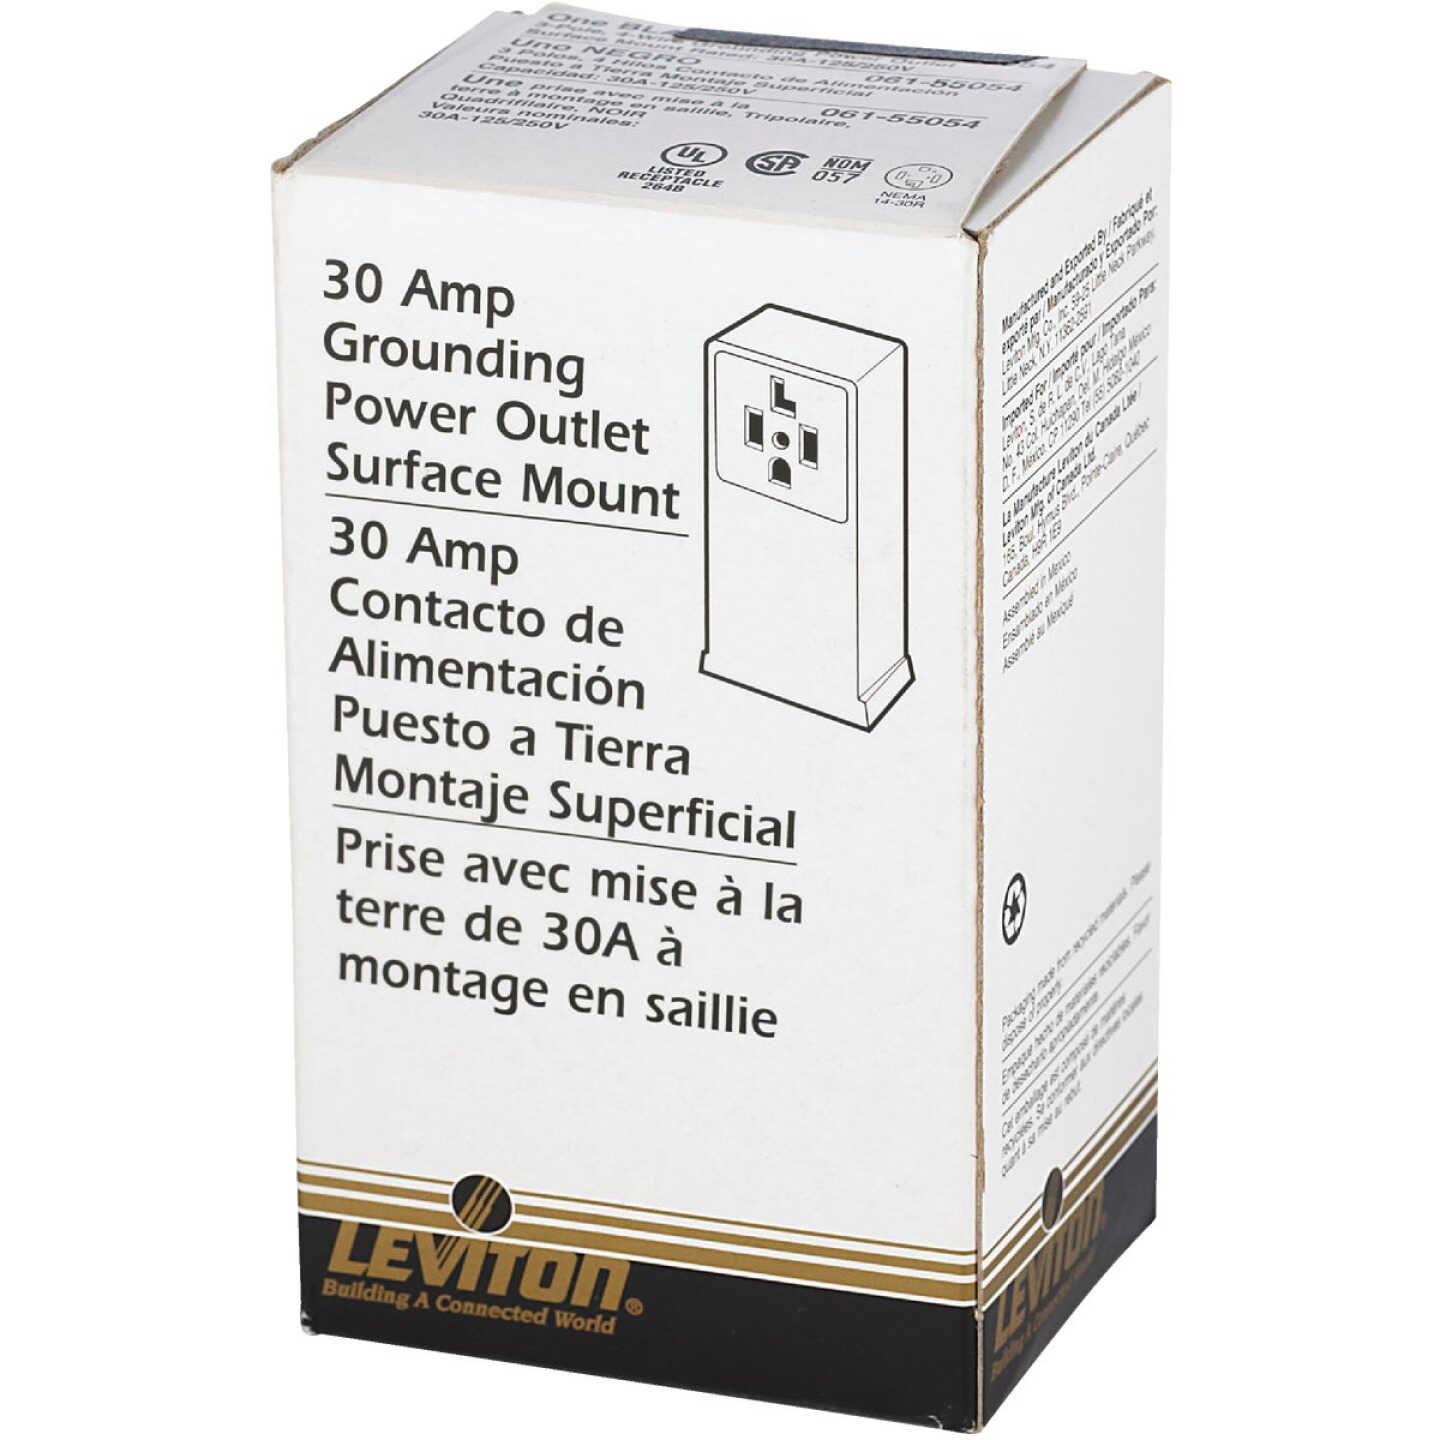 Leviton 30A Surface Mount Black 14-30R 4-Wire Dryer Power Outlet Image 2